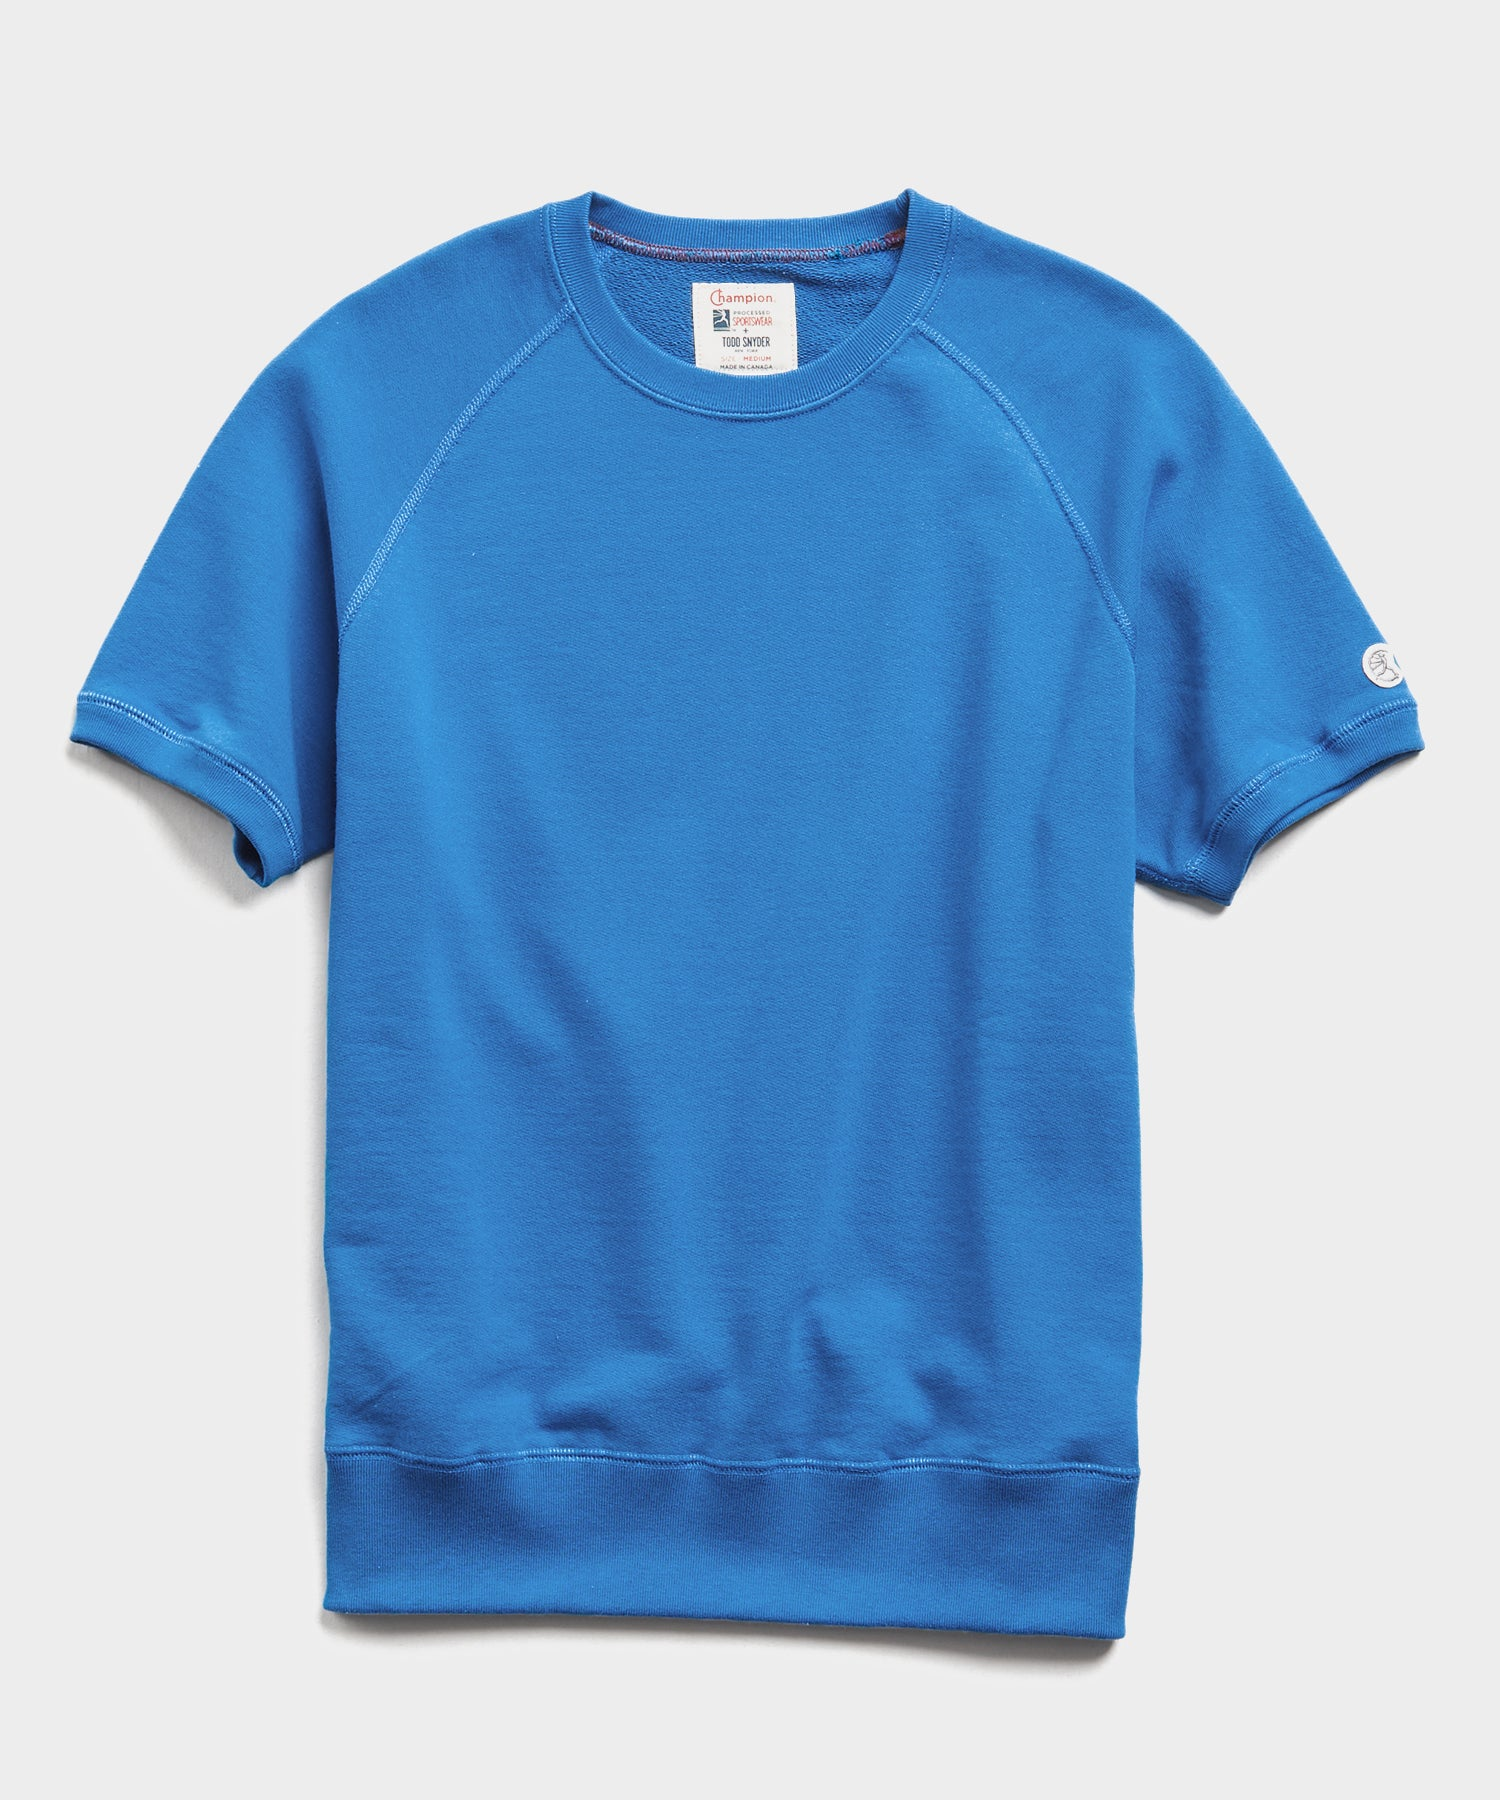 Lightweight Short Sleeve Sweatshirt in Yacht Club Blue